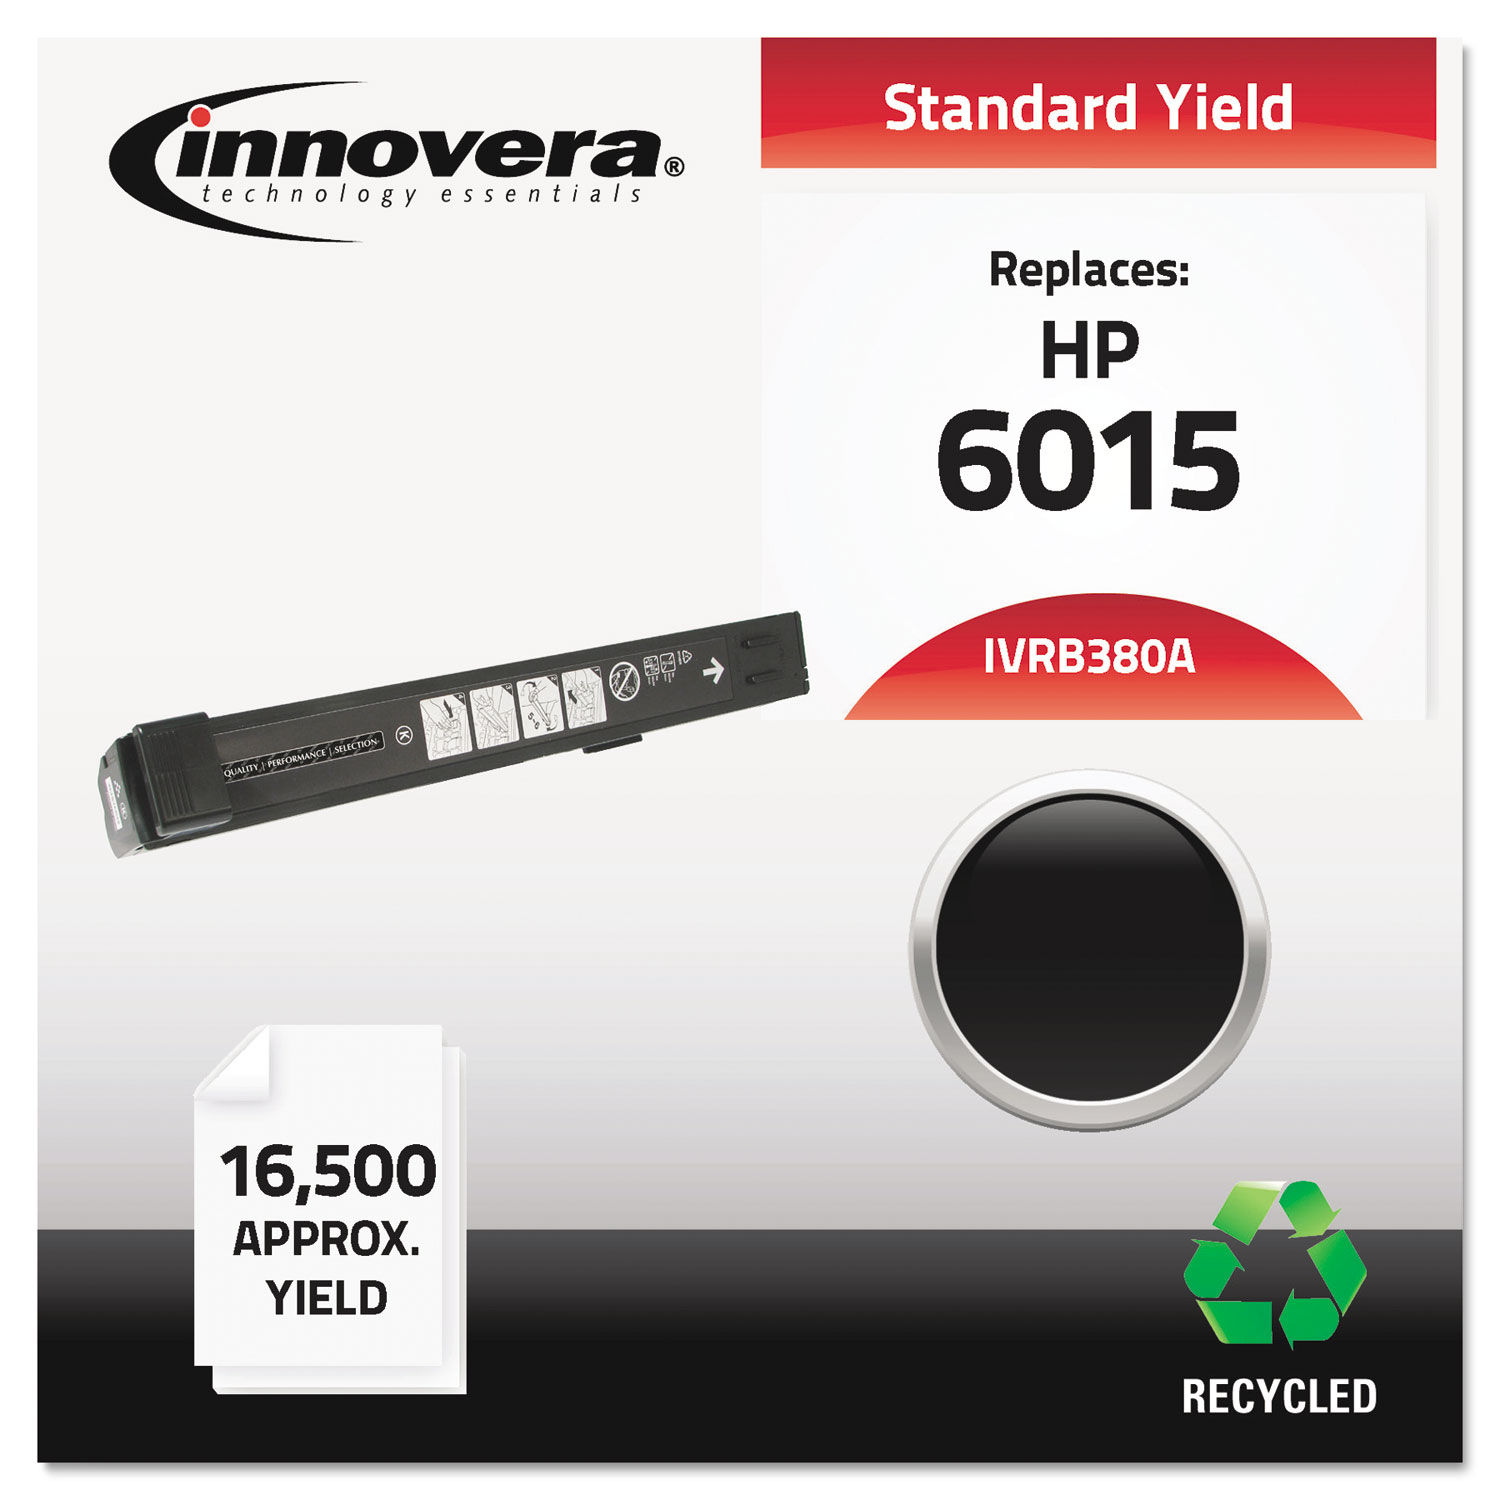 Remanufactured CB380A (823A) Toner by Innovera® IVRB380A